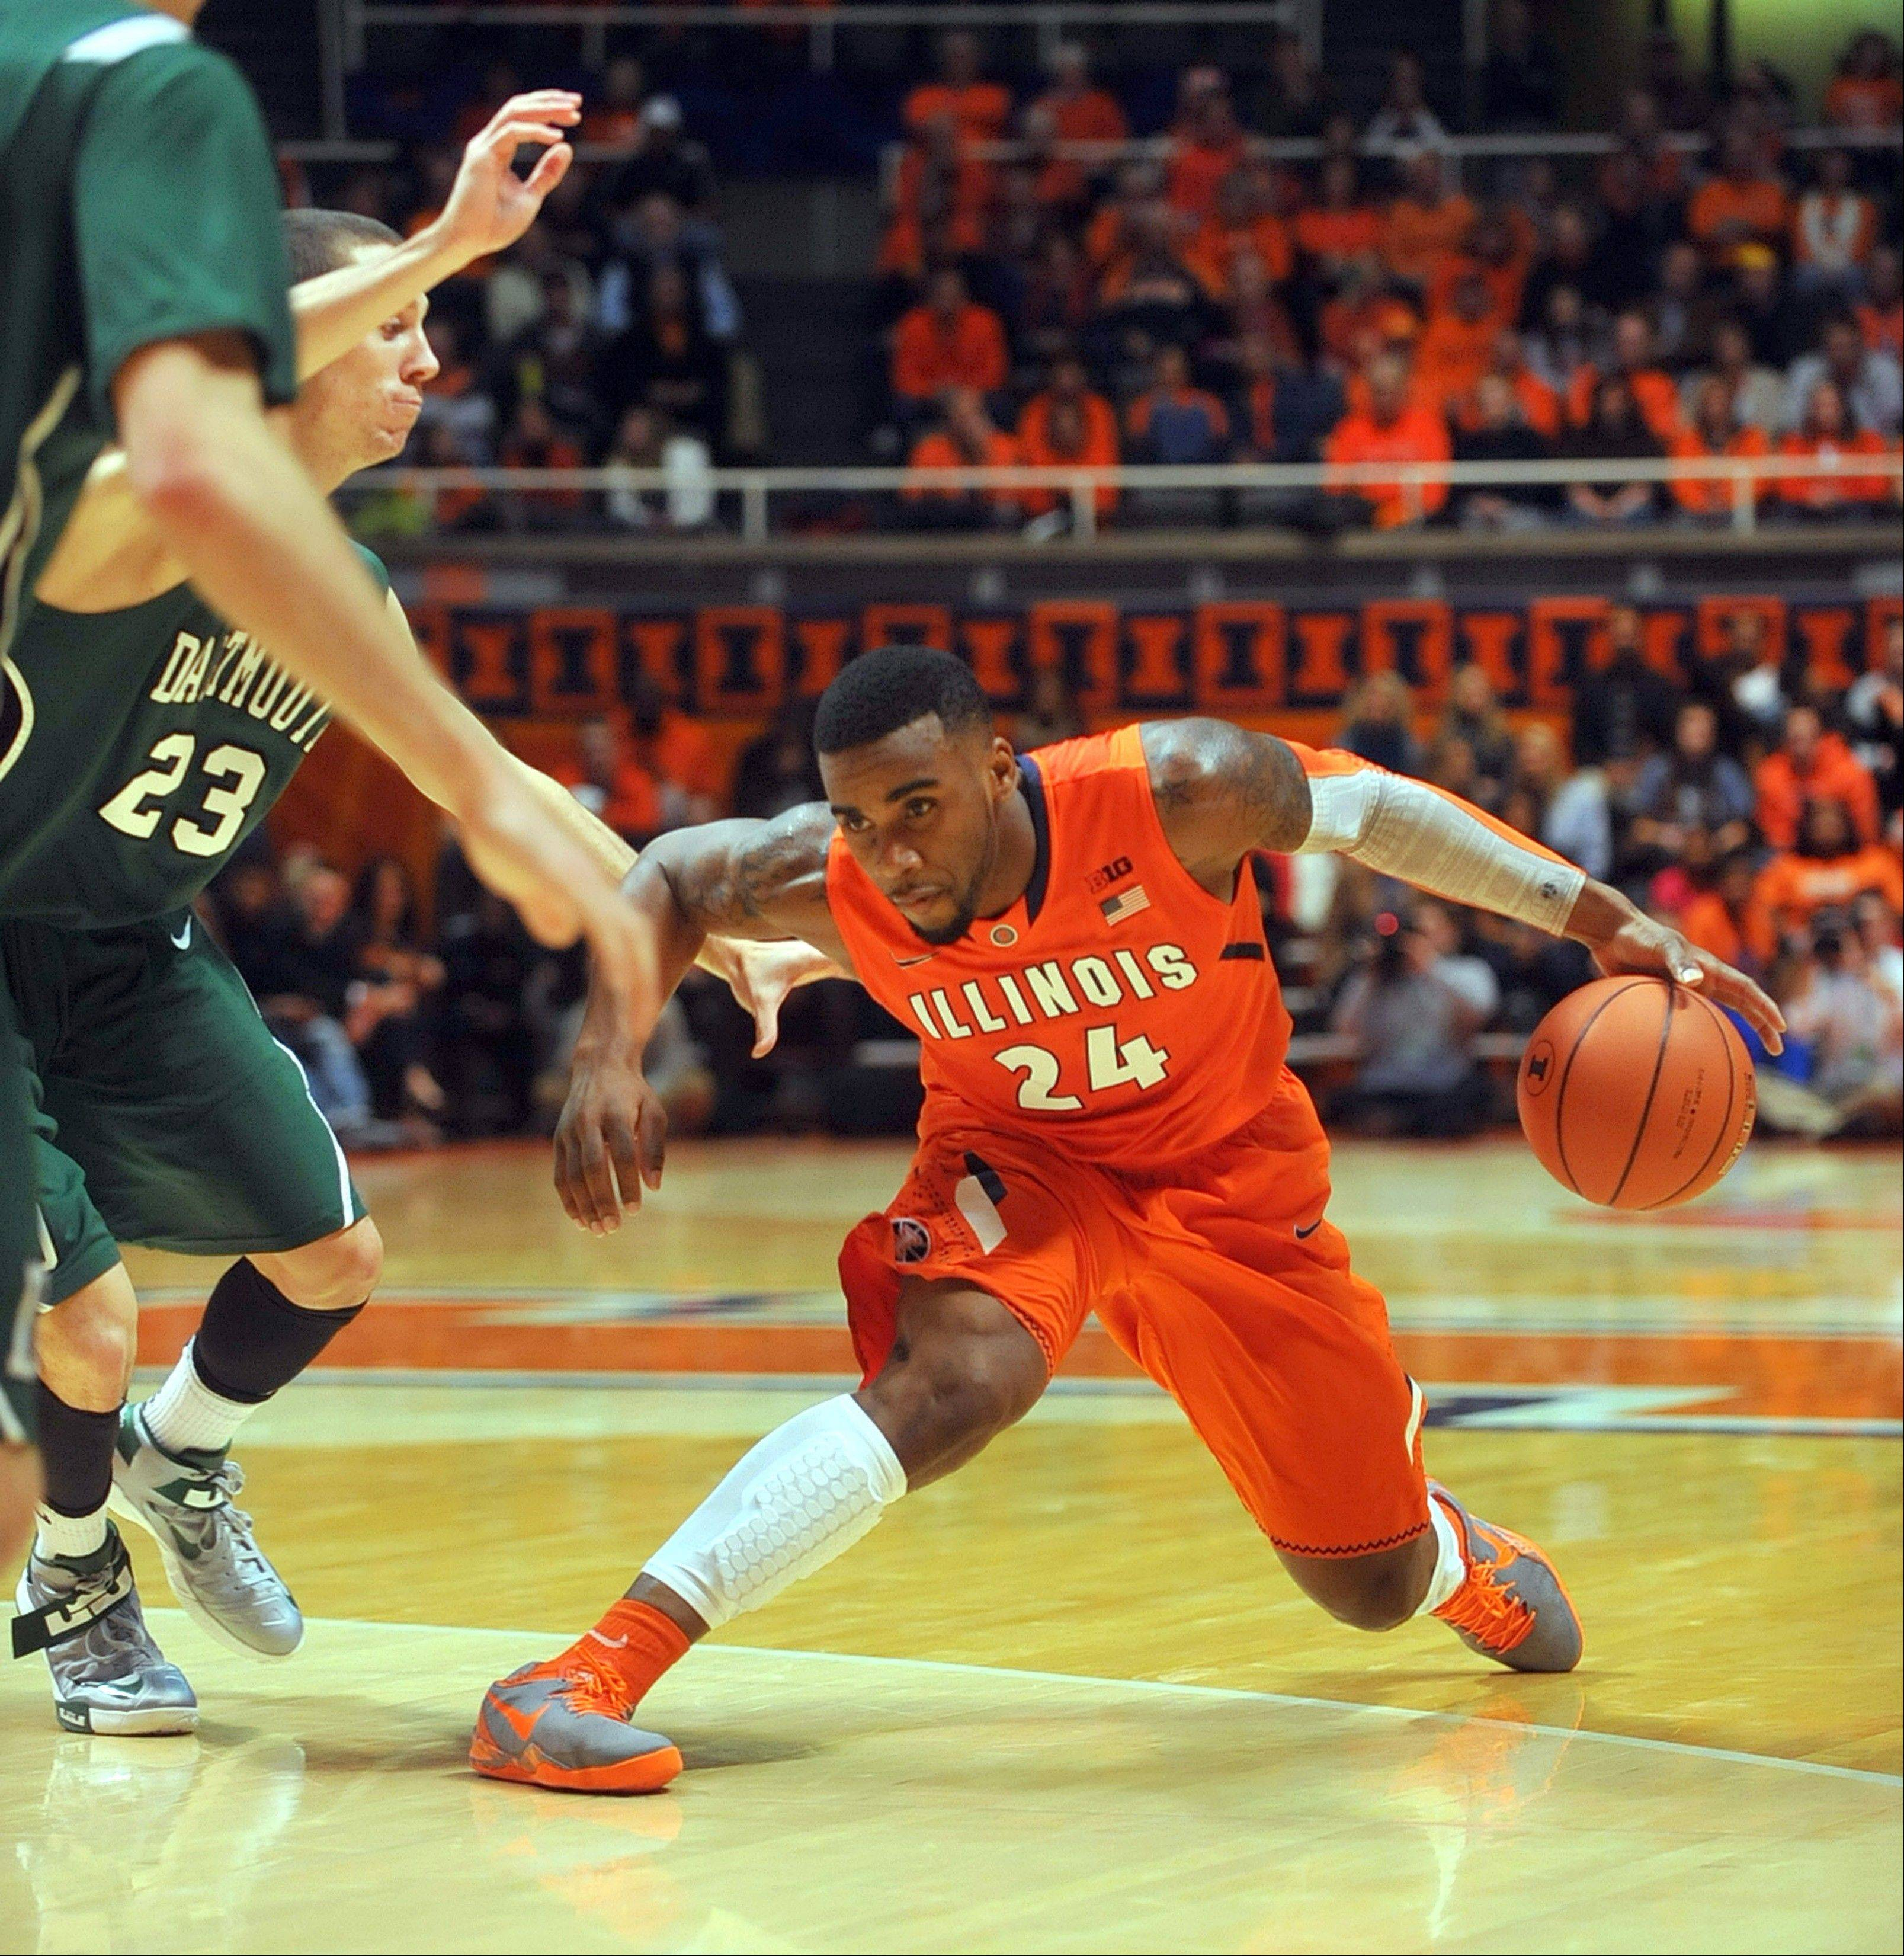 Illinois guard Rayvonte Rice (24) stops his drive defended by Dartmouth Big Green forward John Golden (23) during Tuesday night's game in Champaign. The Illini beat Dartmouth 72-65.